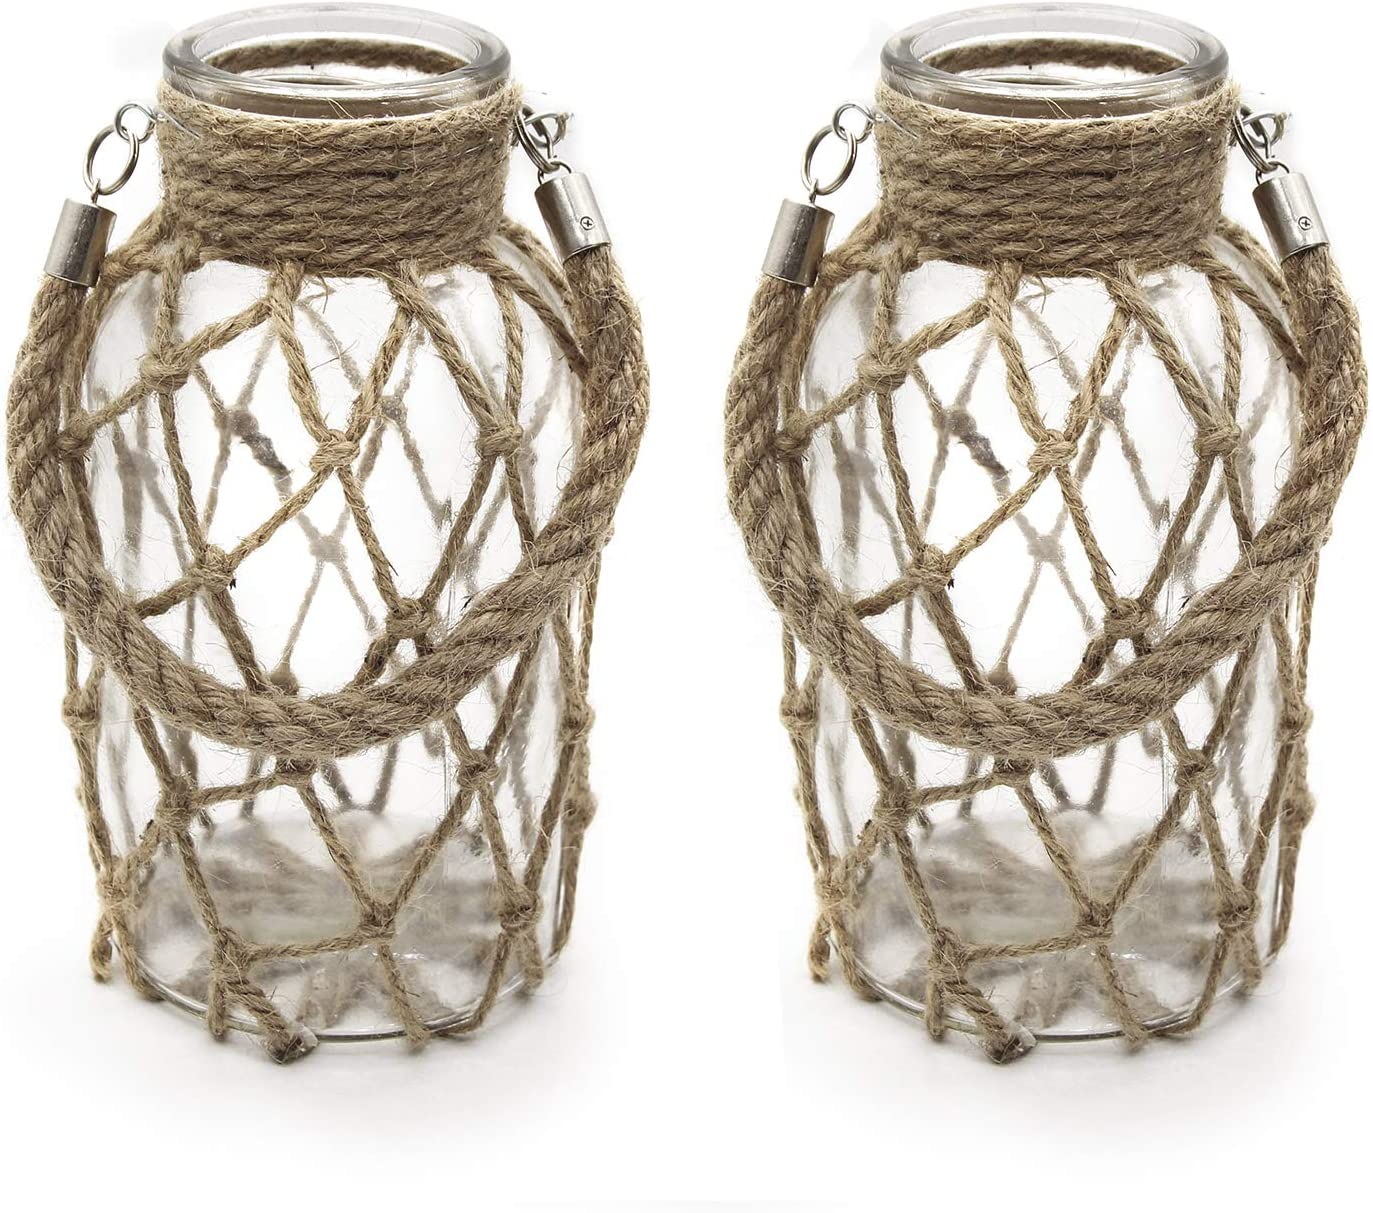 "FUNSOBA Rustic Hanging Mason Jar Creative Rope Net Dry Flower Glass Vase with Handle Pack of 2 (2 Vase 8"")"